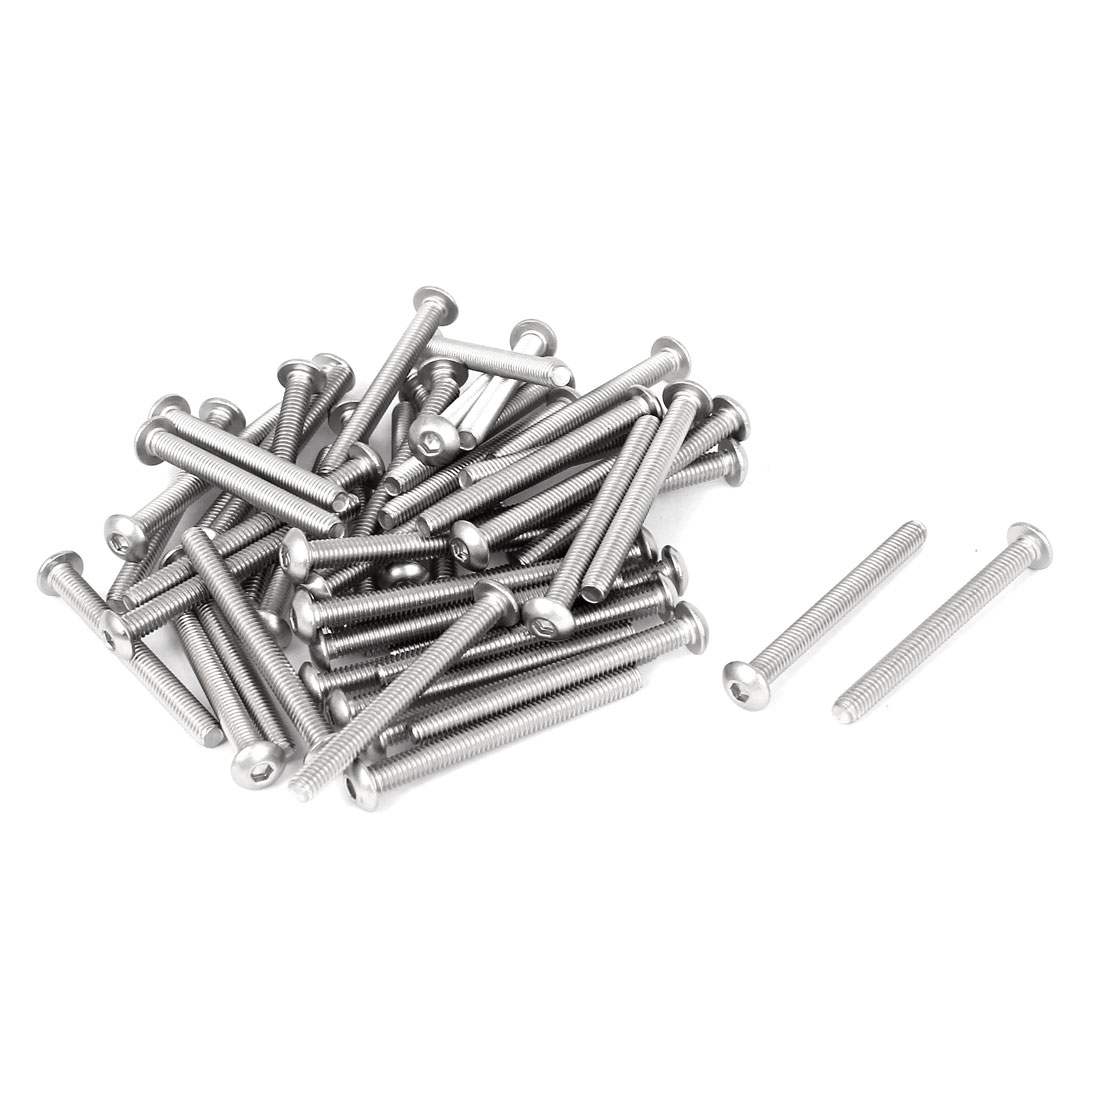 50 Pcs M4x40mm Stainless Steel Hex Socket Key Button Head Bolts Screws 42mm Long